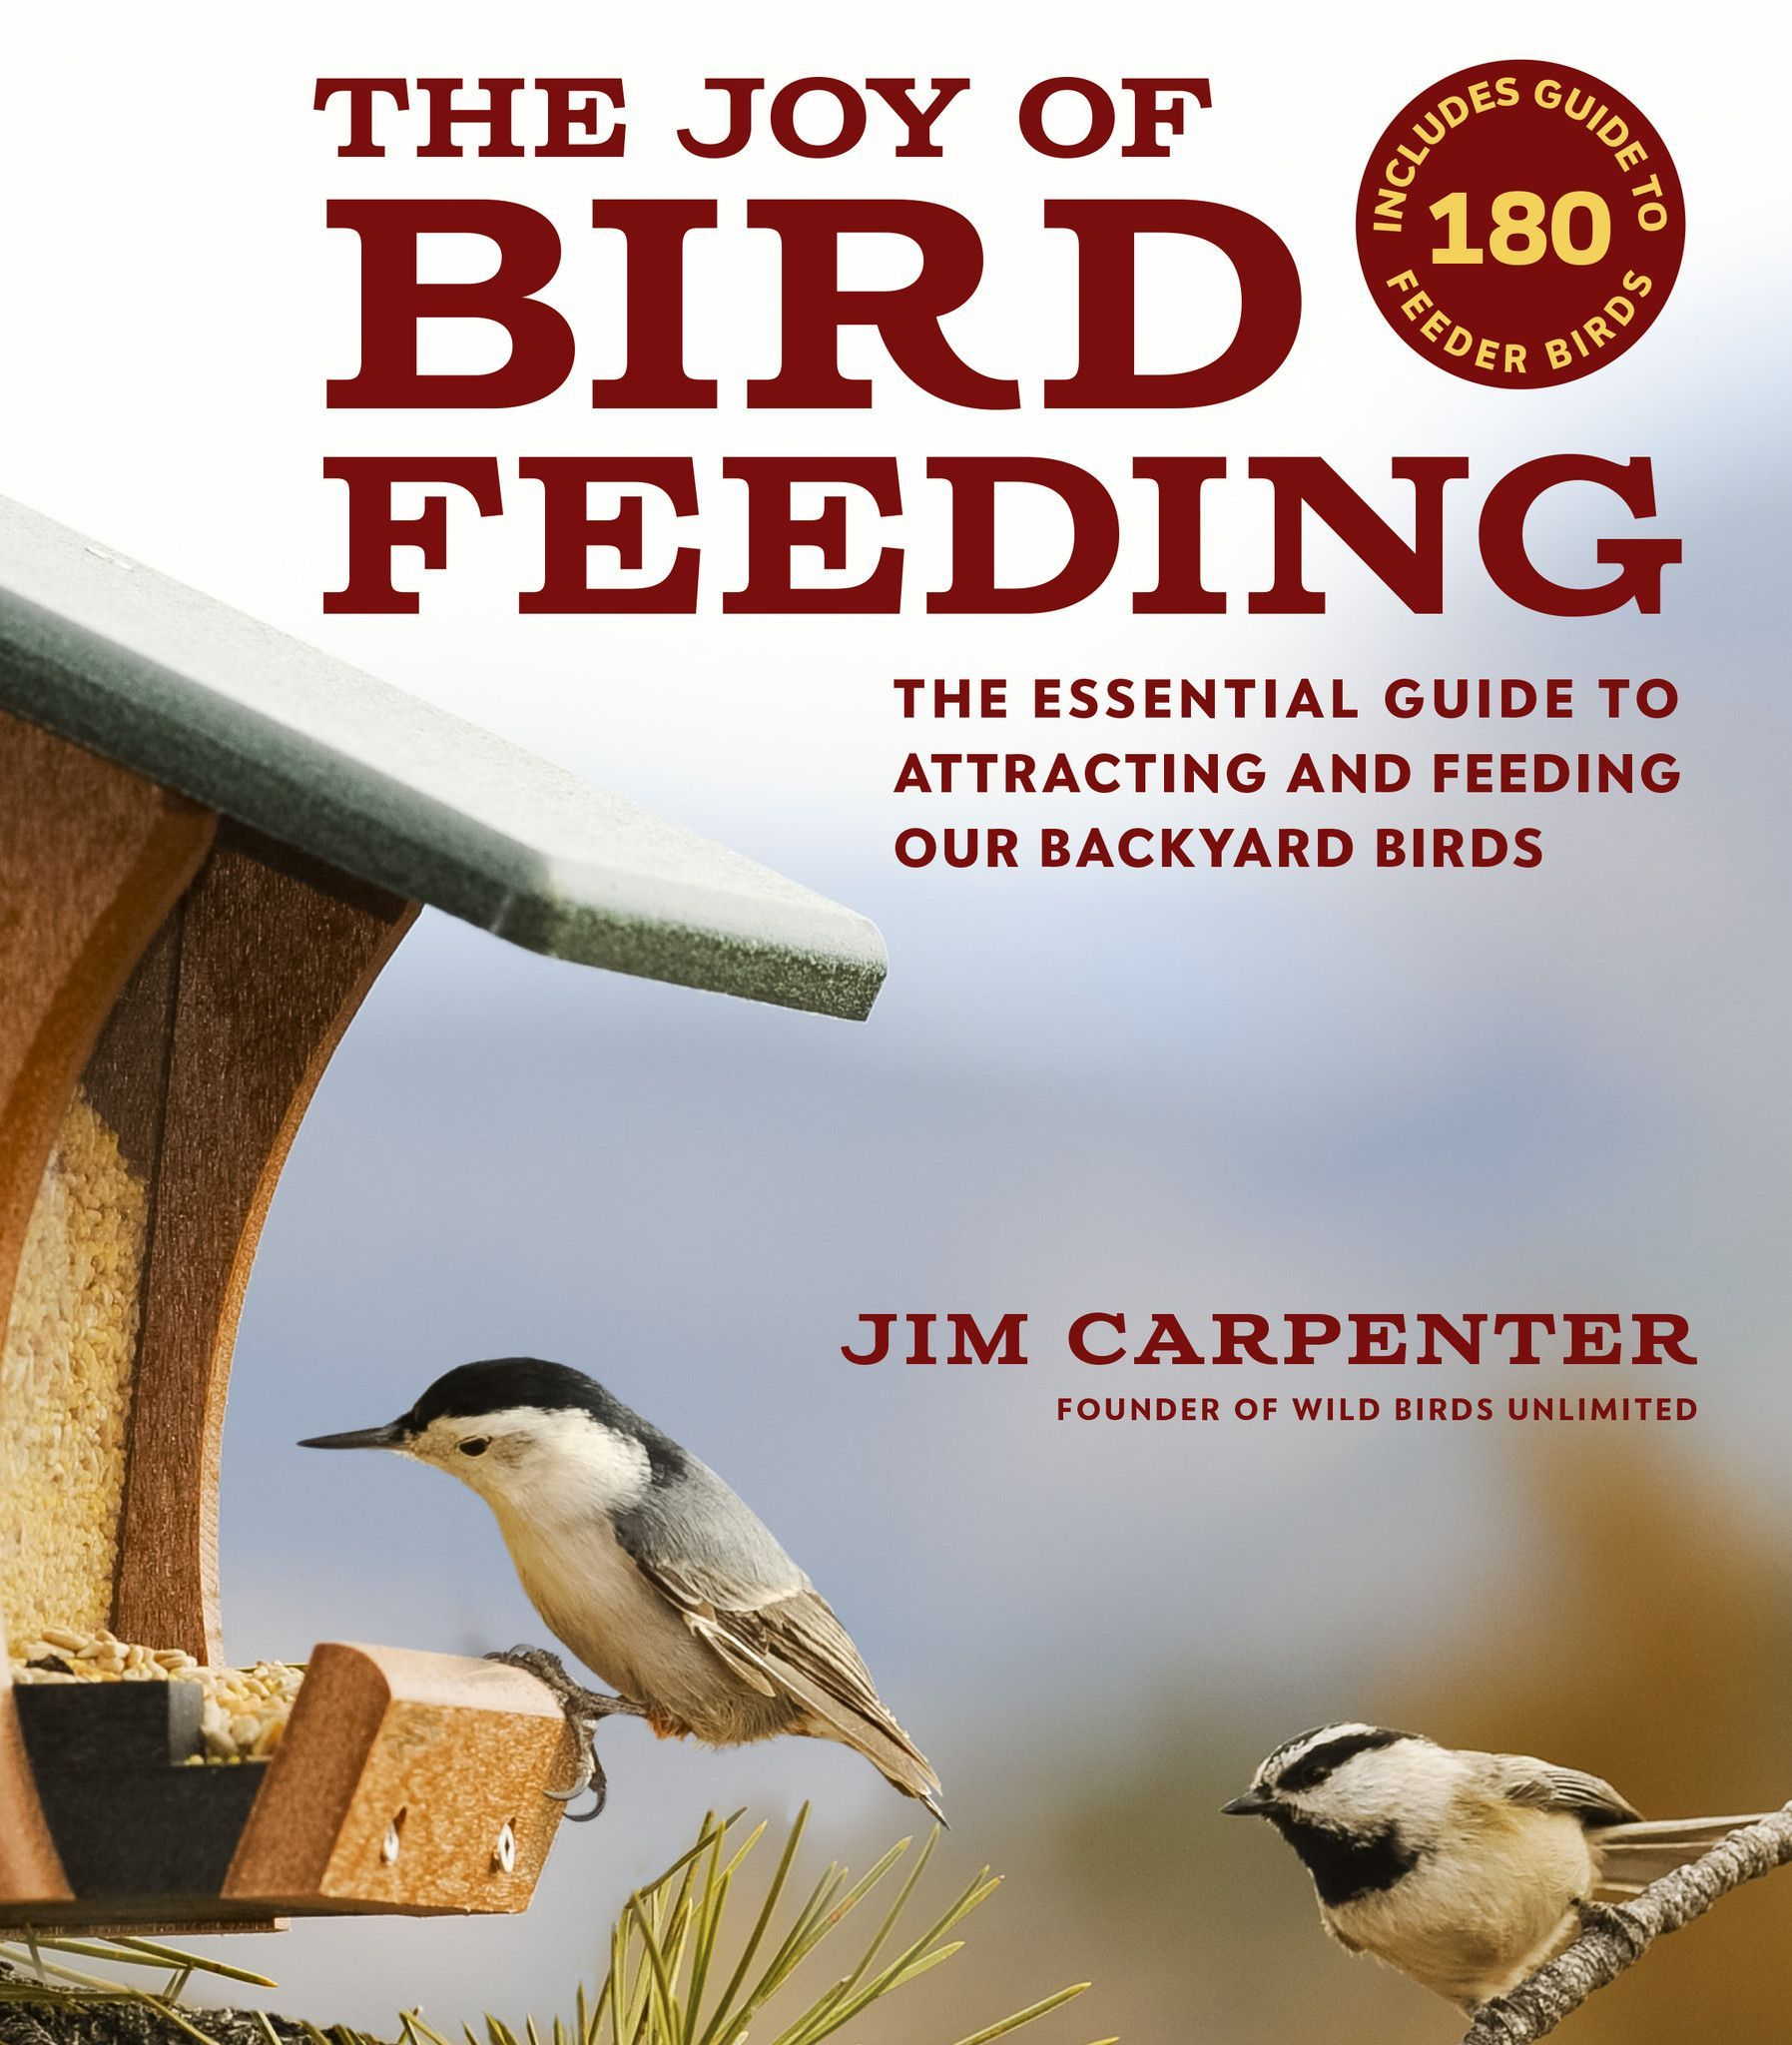 The Joy Of Bird Feeding: The Essential Guide To Attracting